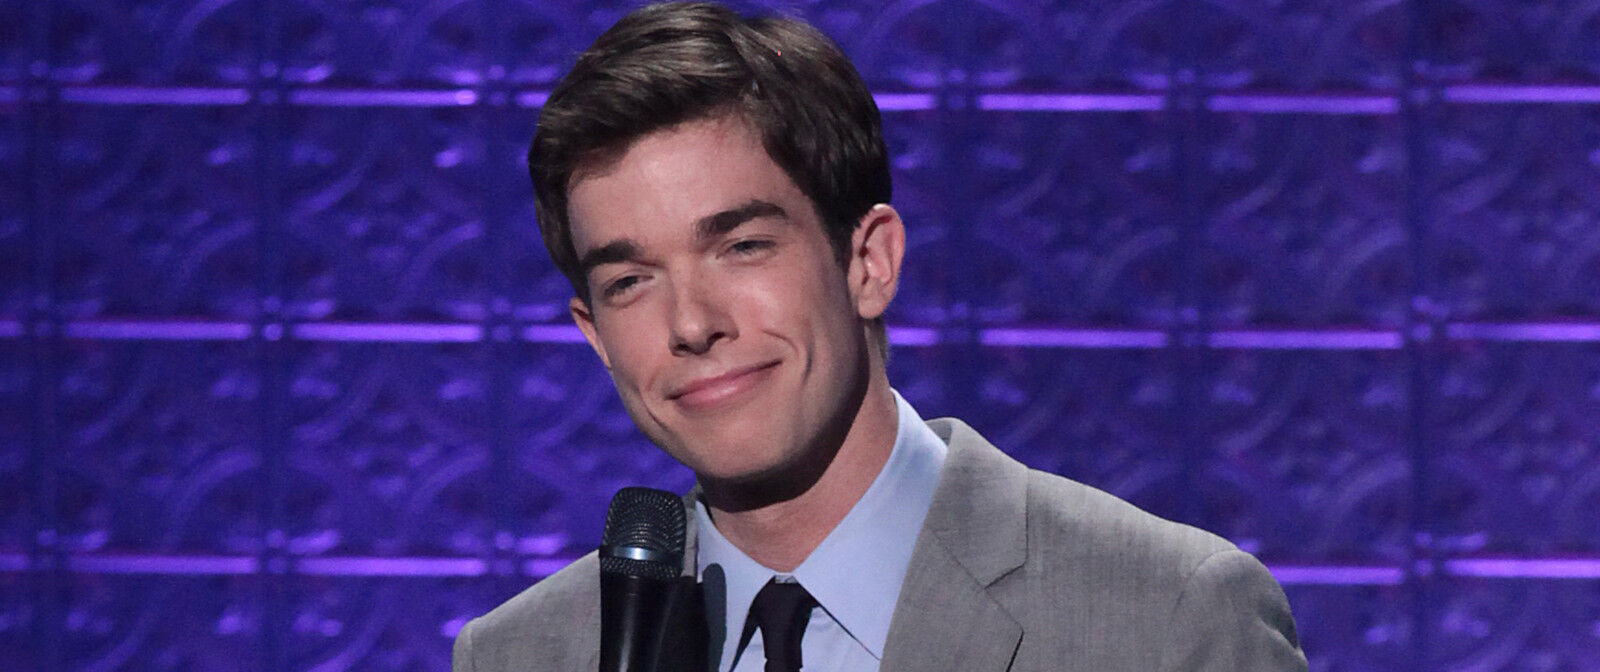 John Mulaney Tickets (Rescheduled from April 20)